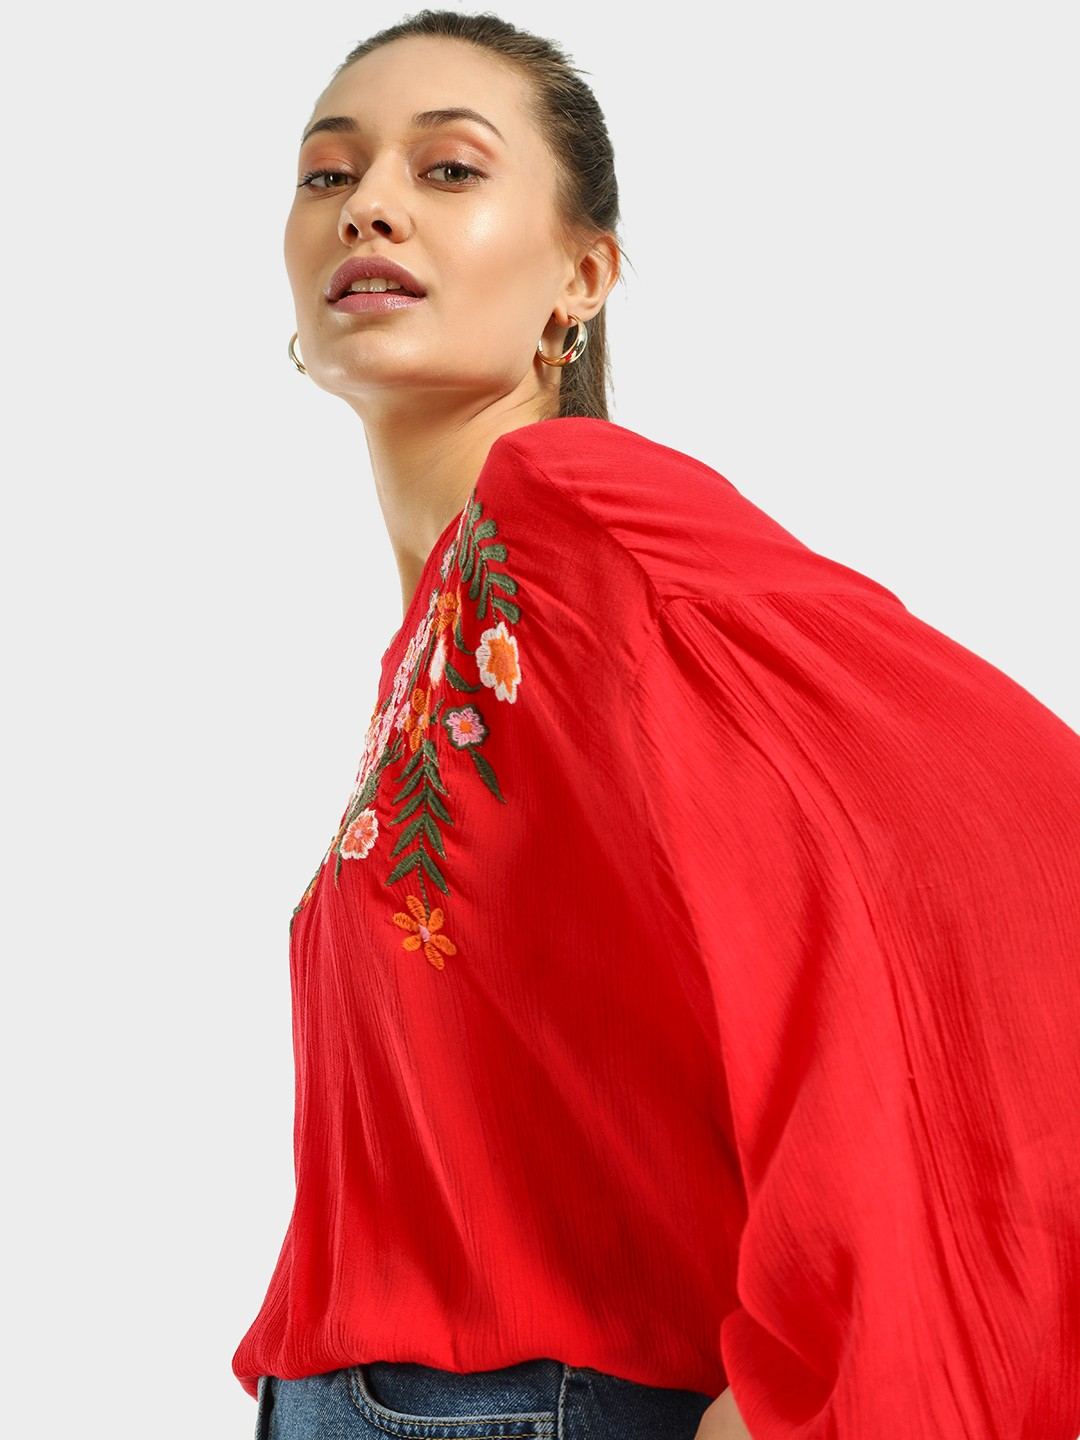 Kisscoast Red Embroidered Batwing Sleeve Blouse 1